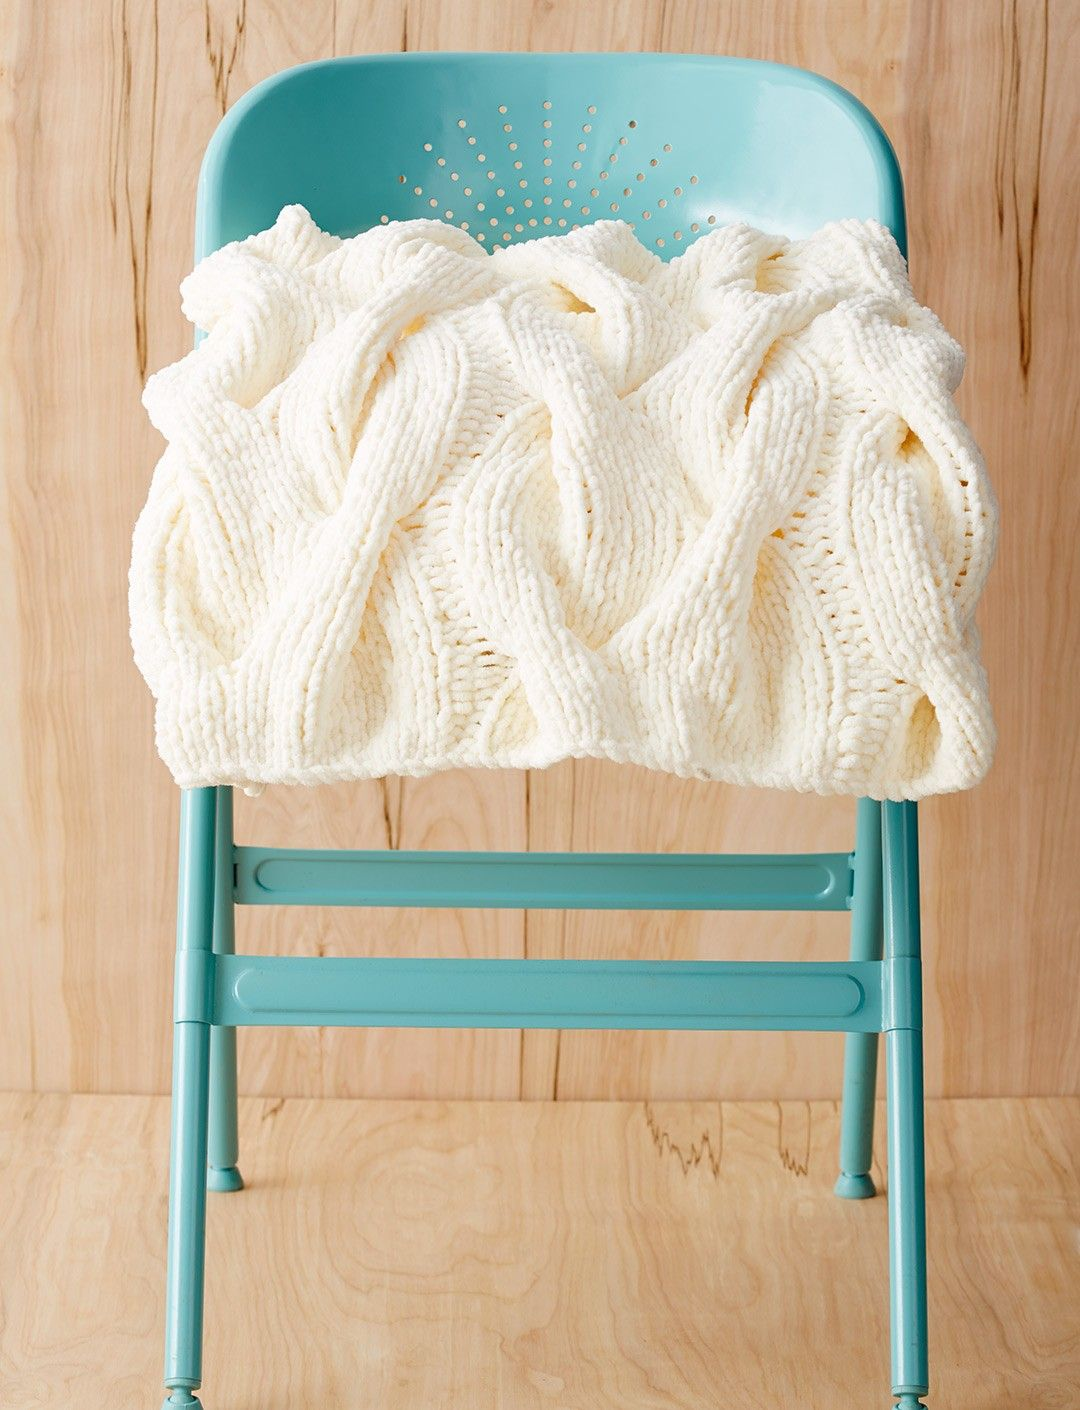 Yarnspirations bernat cozy cables blanket patterns free pattern cozy cables blanket in bernat blanket discover more patterns by bernat at loveknitting the world largest range of knitting supplies we bankloansurffo Image collections